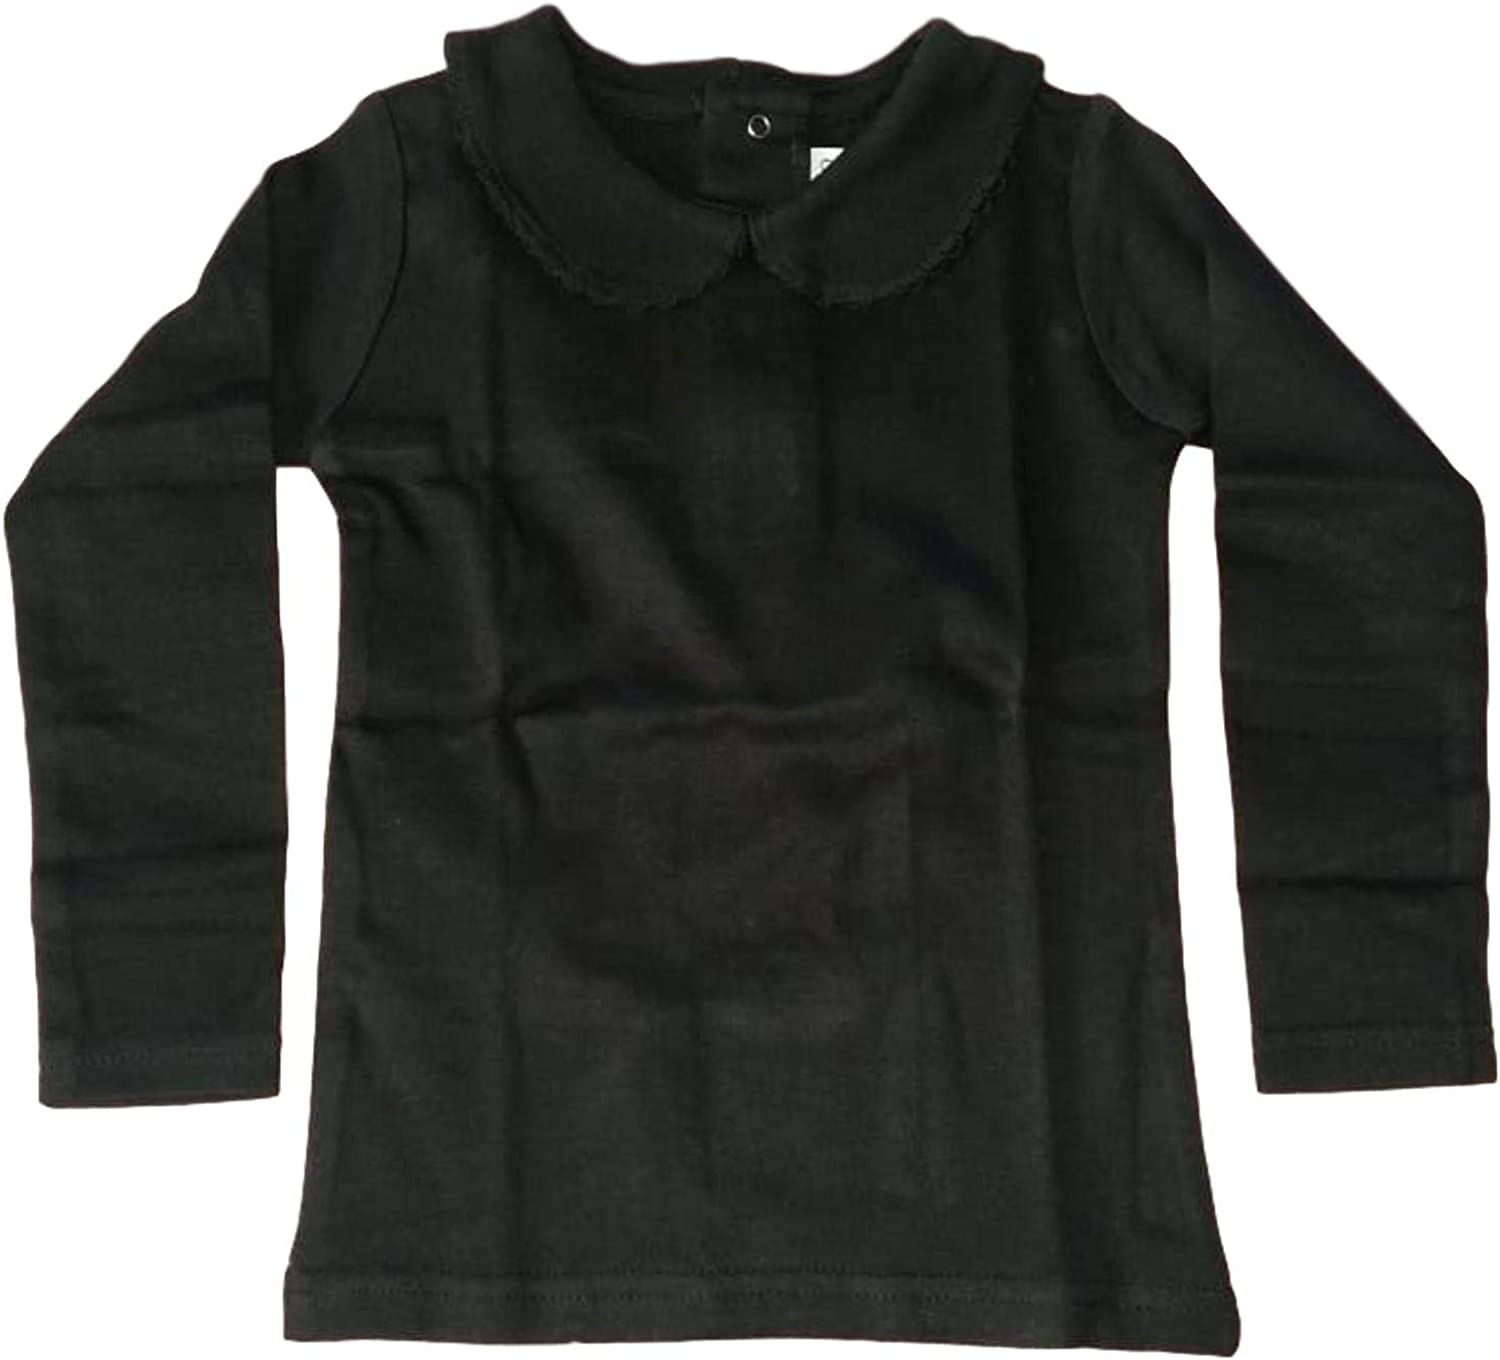 BABY GIRL COTTON PETER PAN COLLAR LONG SLEEVE SOLID COLOR TOP T-SHIRT CLASSY